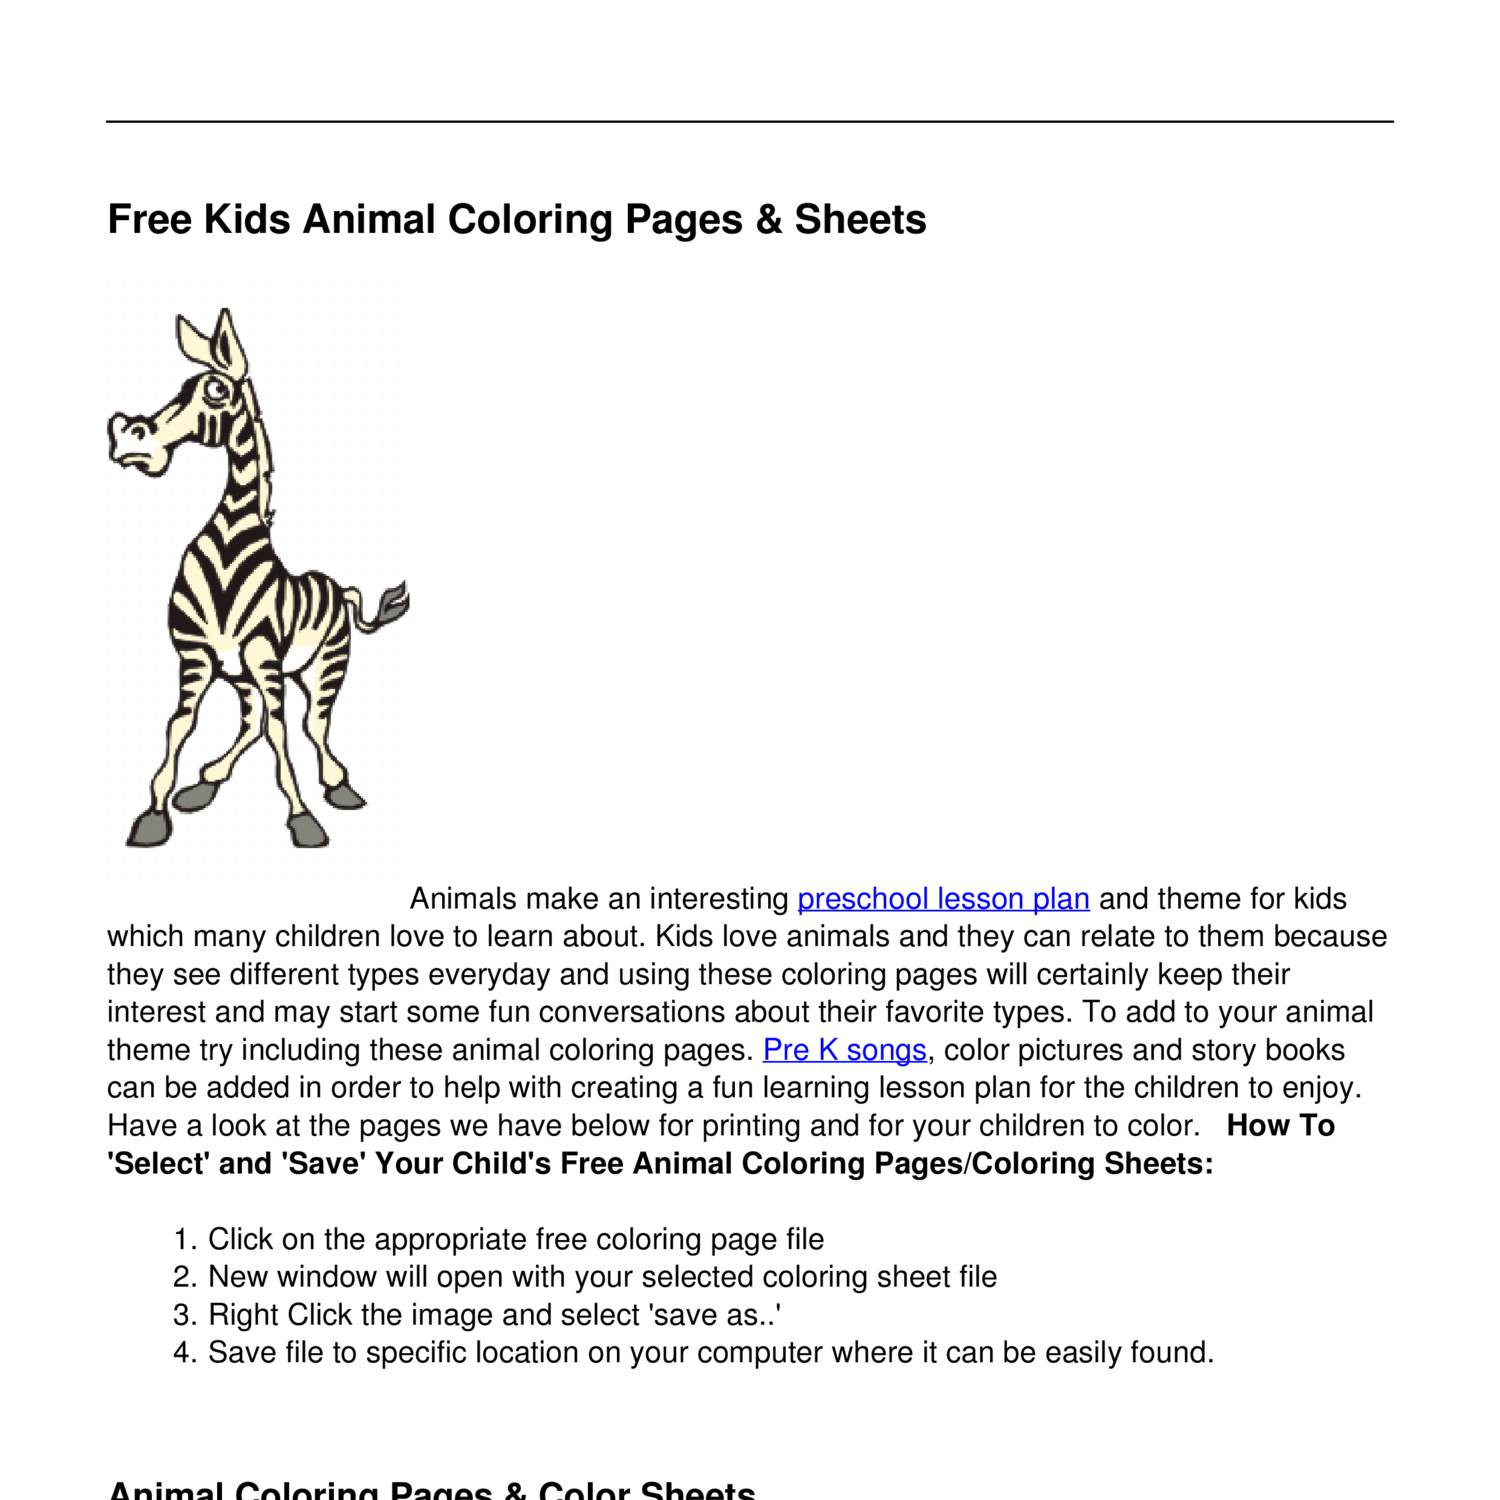 Free Animal Coloring Pages Kids Coloring Sheets Pdf